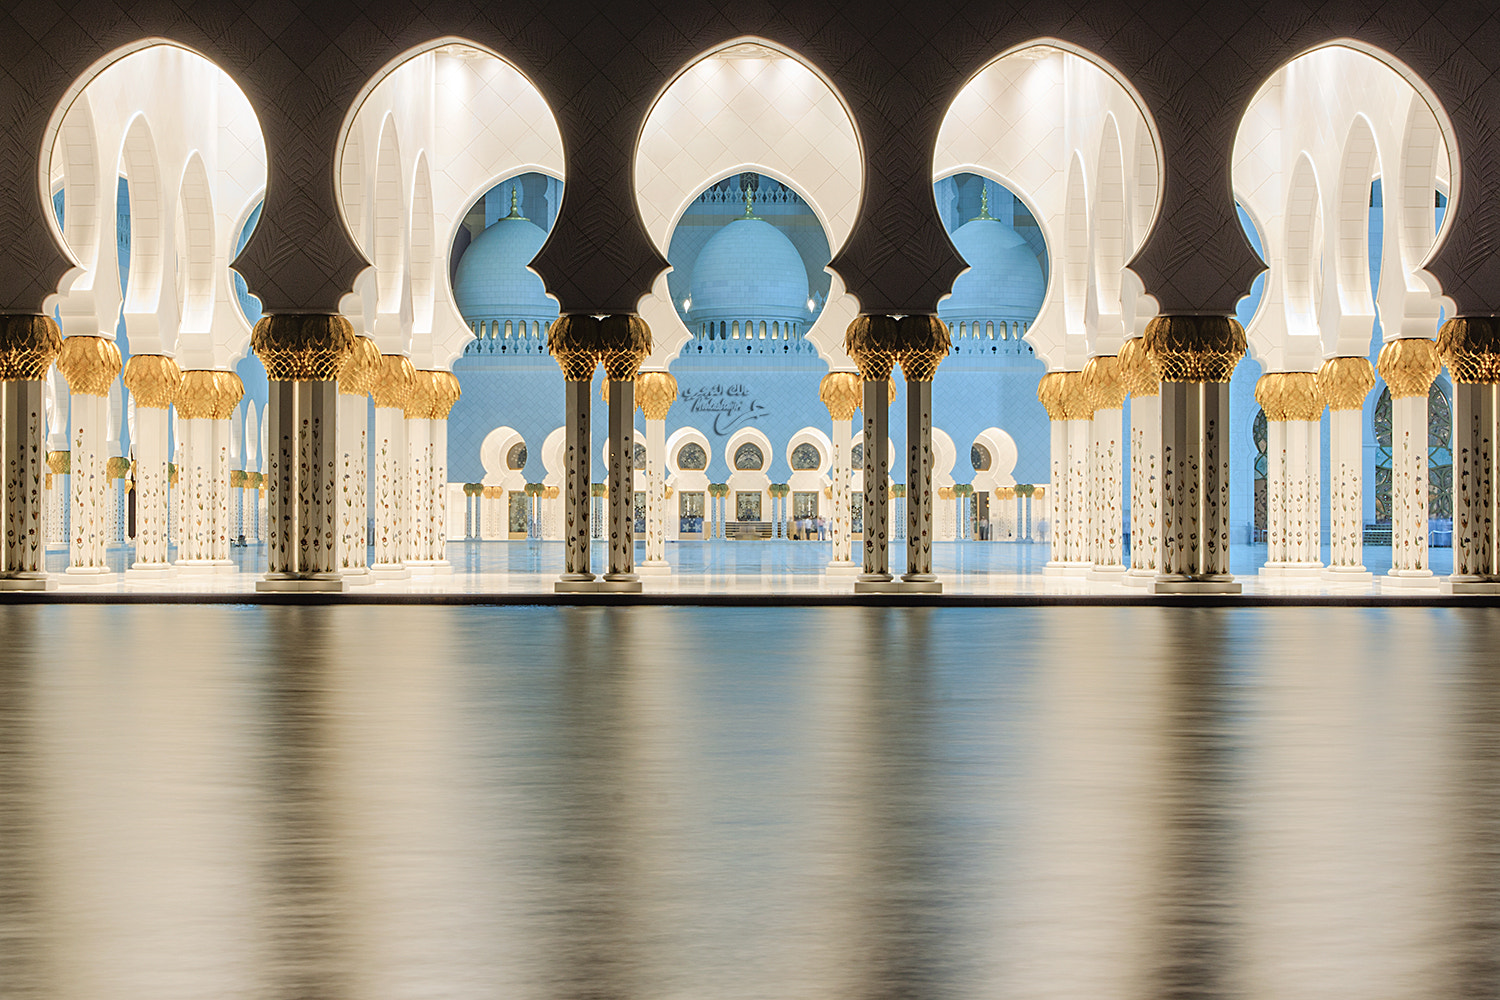 Photograph Similarity Zayed Mosque by mooka altwijri on 500px